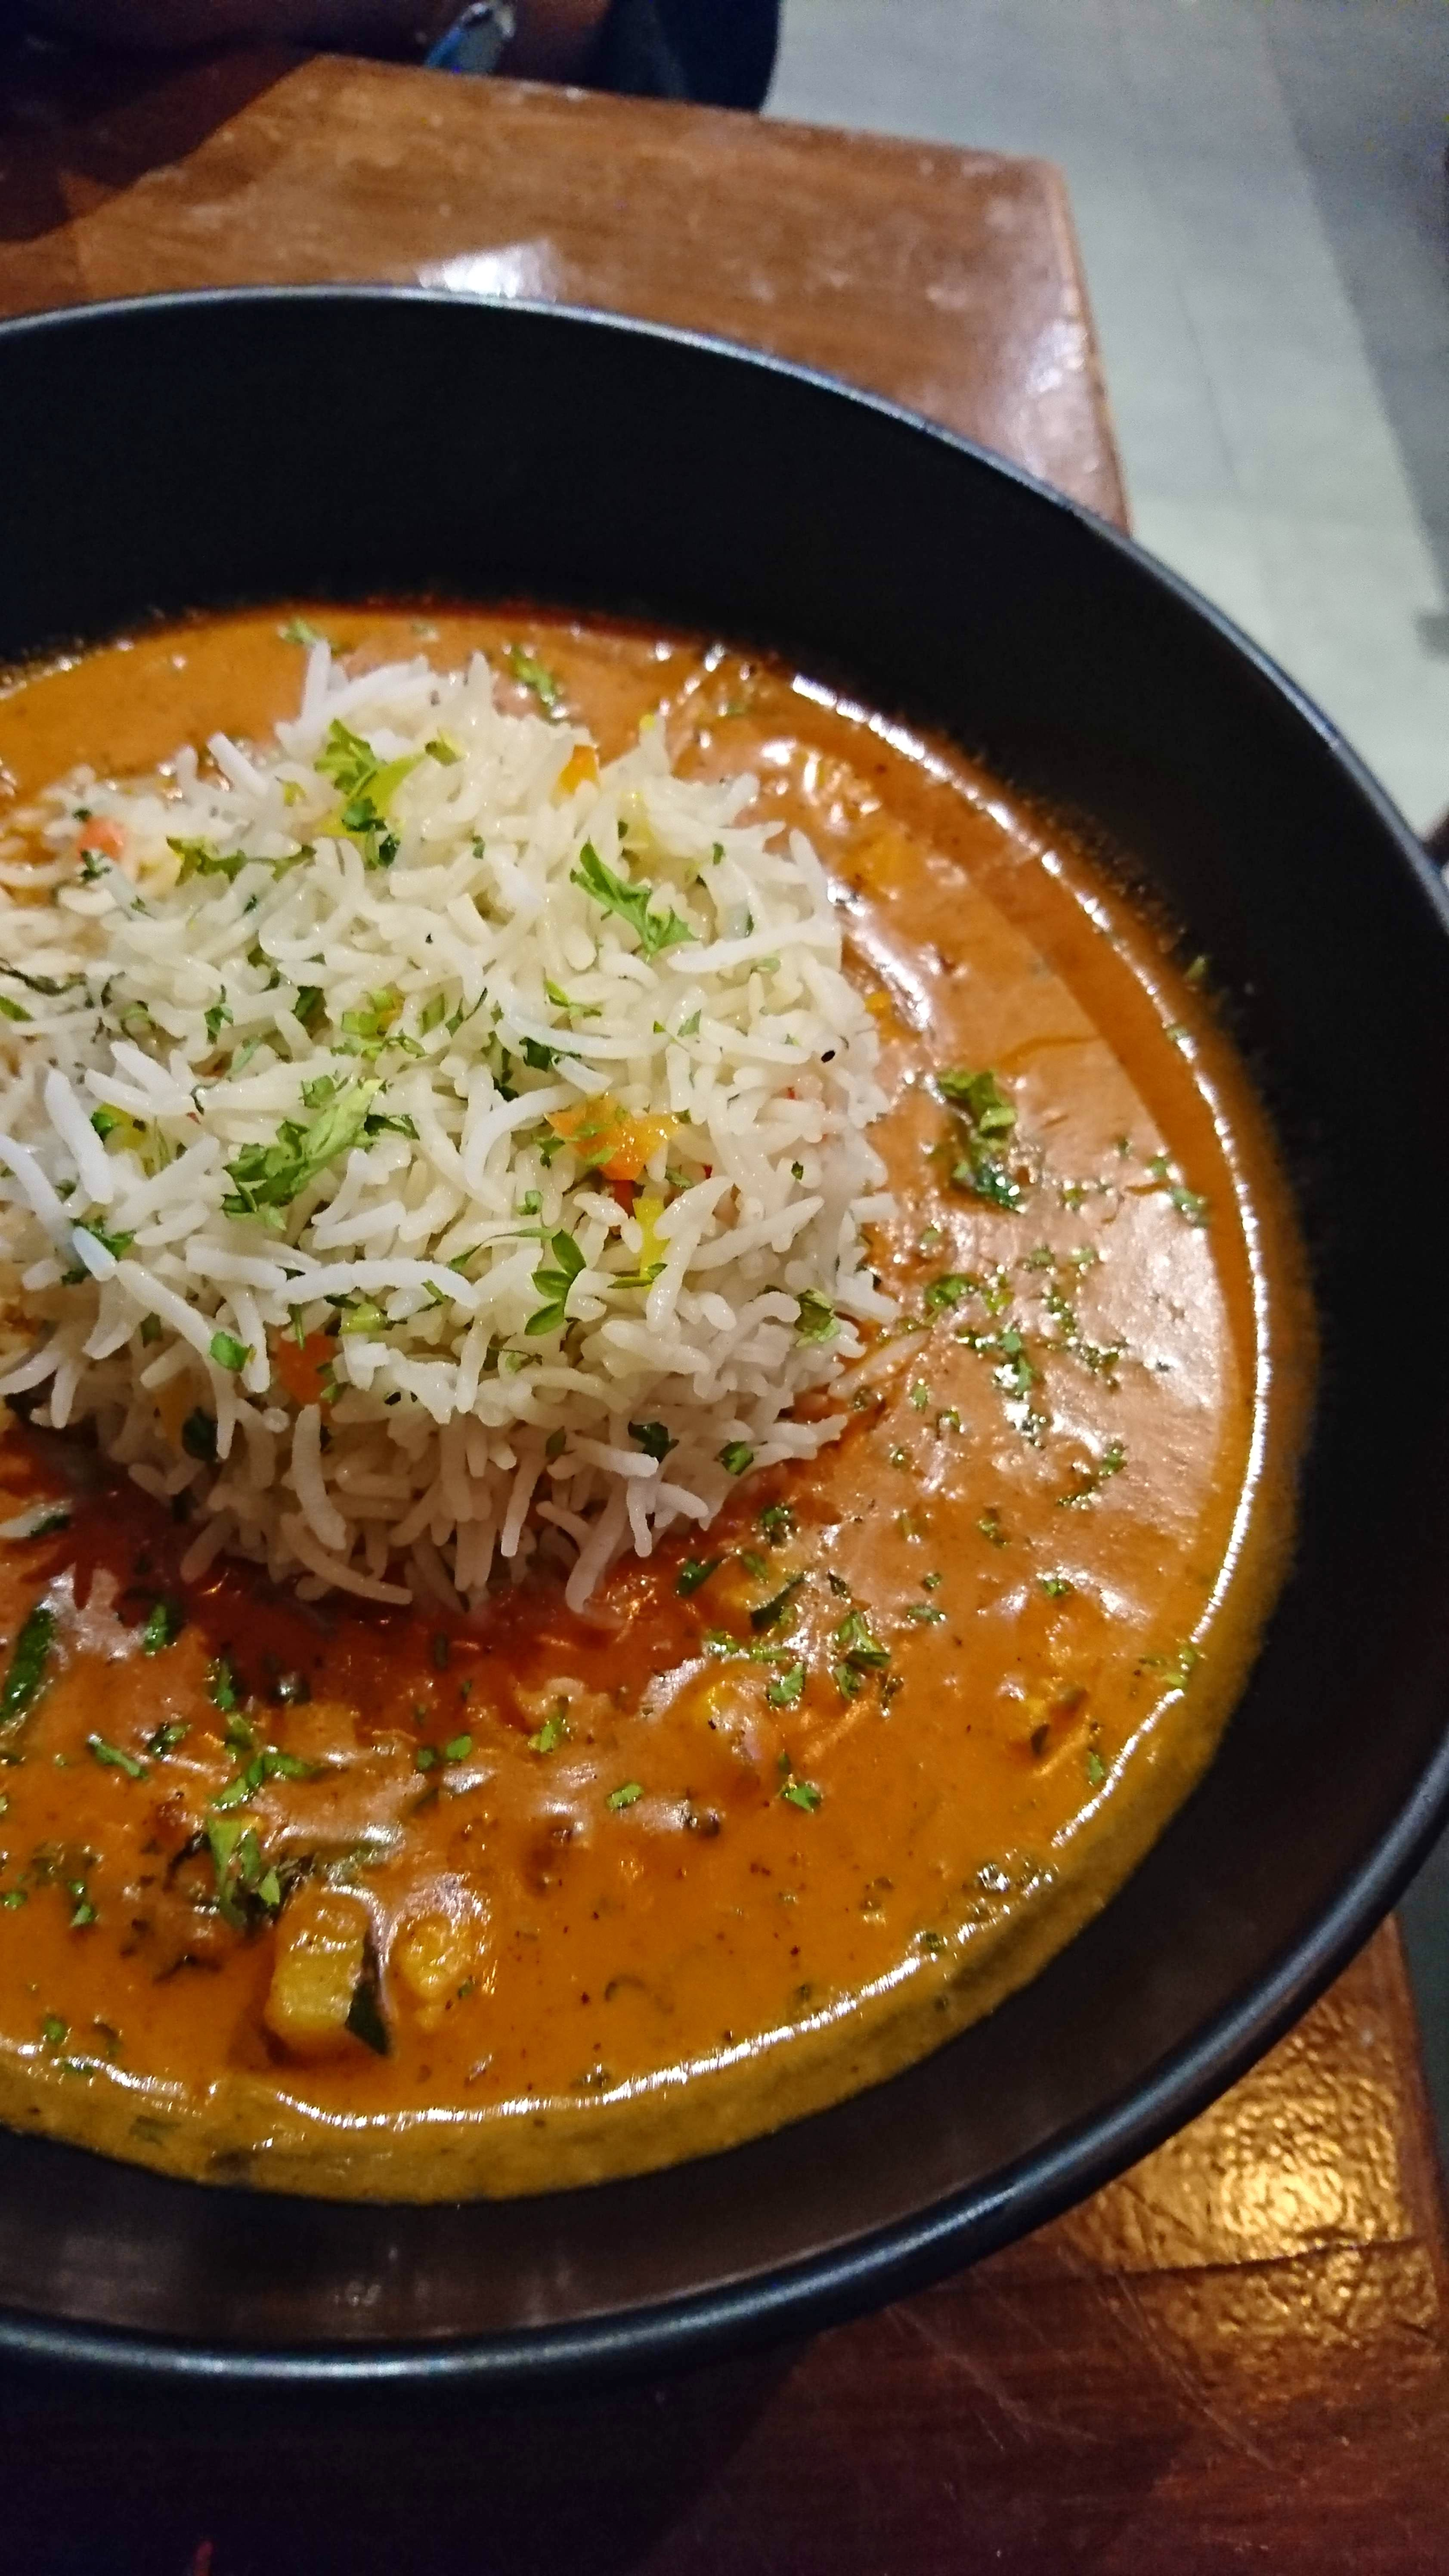 Dish,Food,Cuisine,Ingredient,Curry,Gravy,Produce,Gumbo,Recipe,Meat